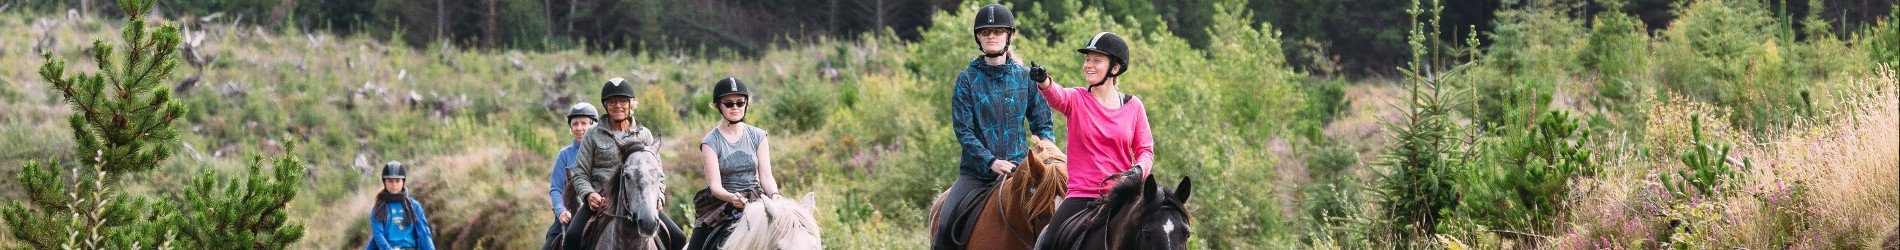 Horse riding in Wicklow